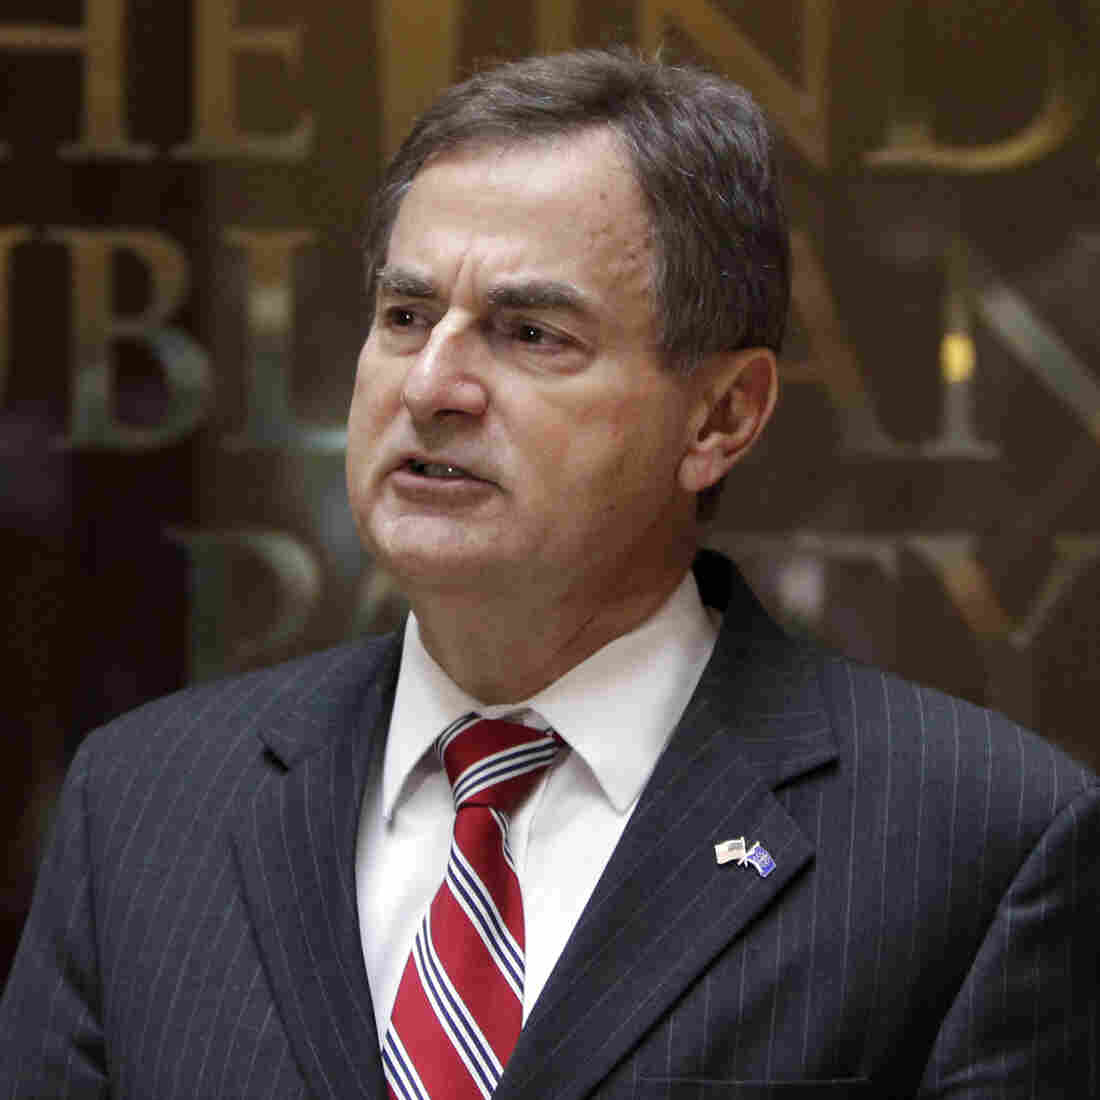 Indiana Republican Senate candidate Richard Mourdock holds a news conference Wednesday in Indianapolis to address his comments about rape and abortion.